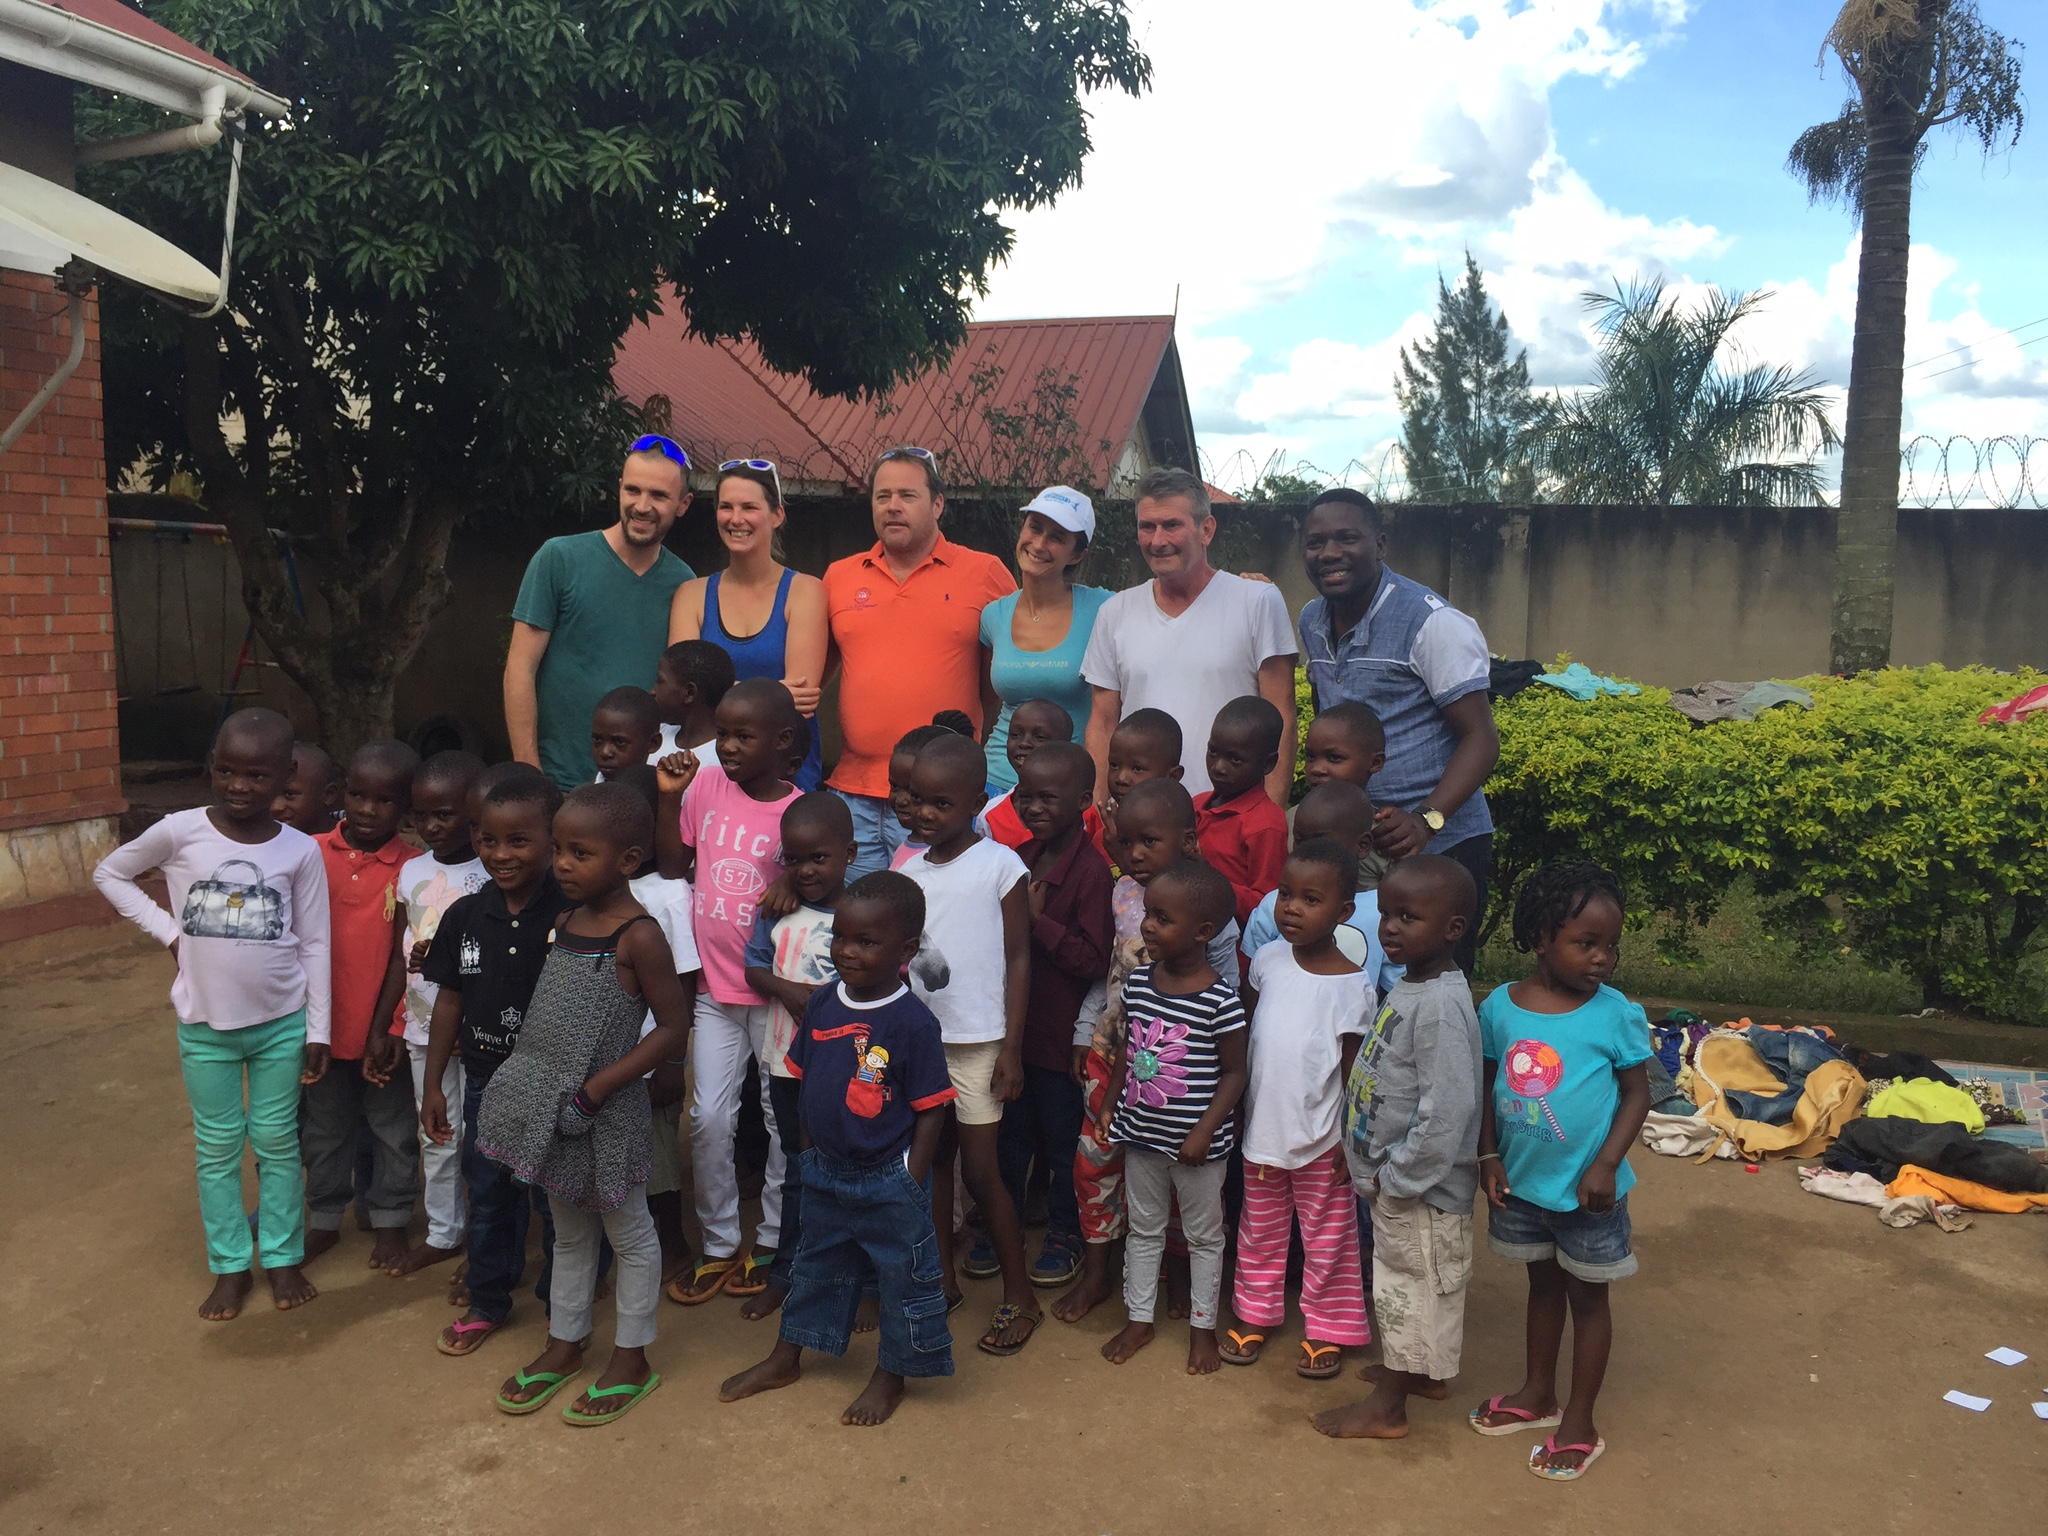 uganda-orphanage-shelter-charity-kids-4